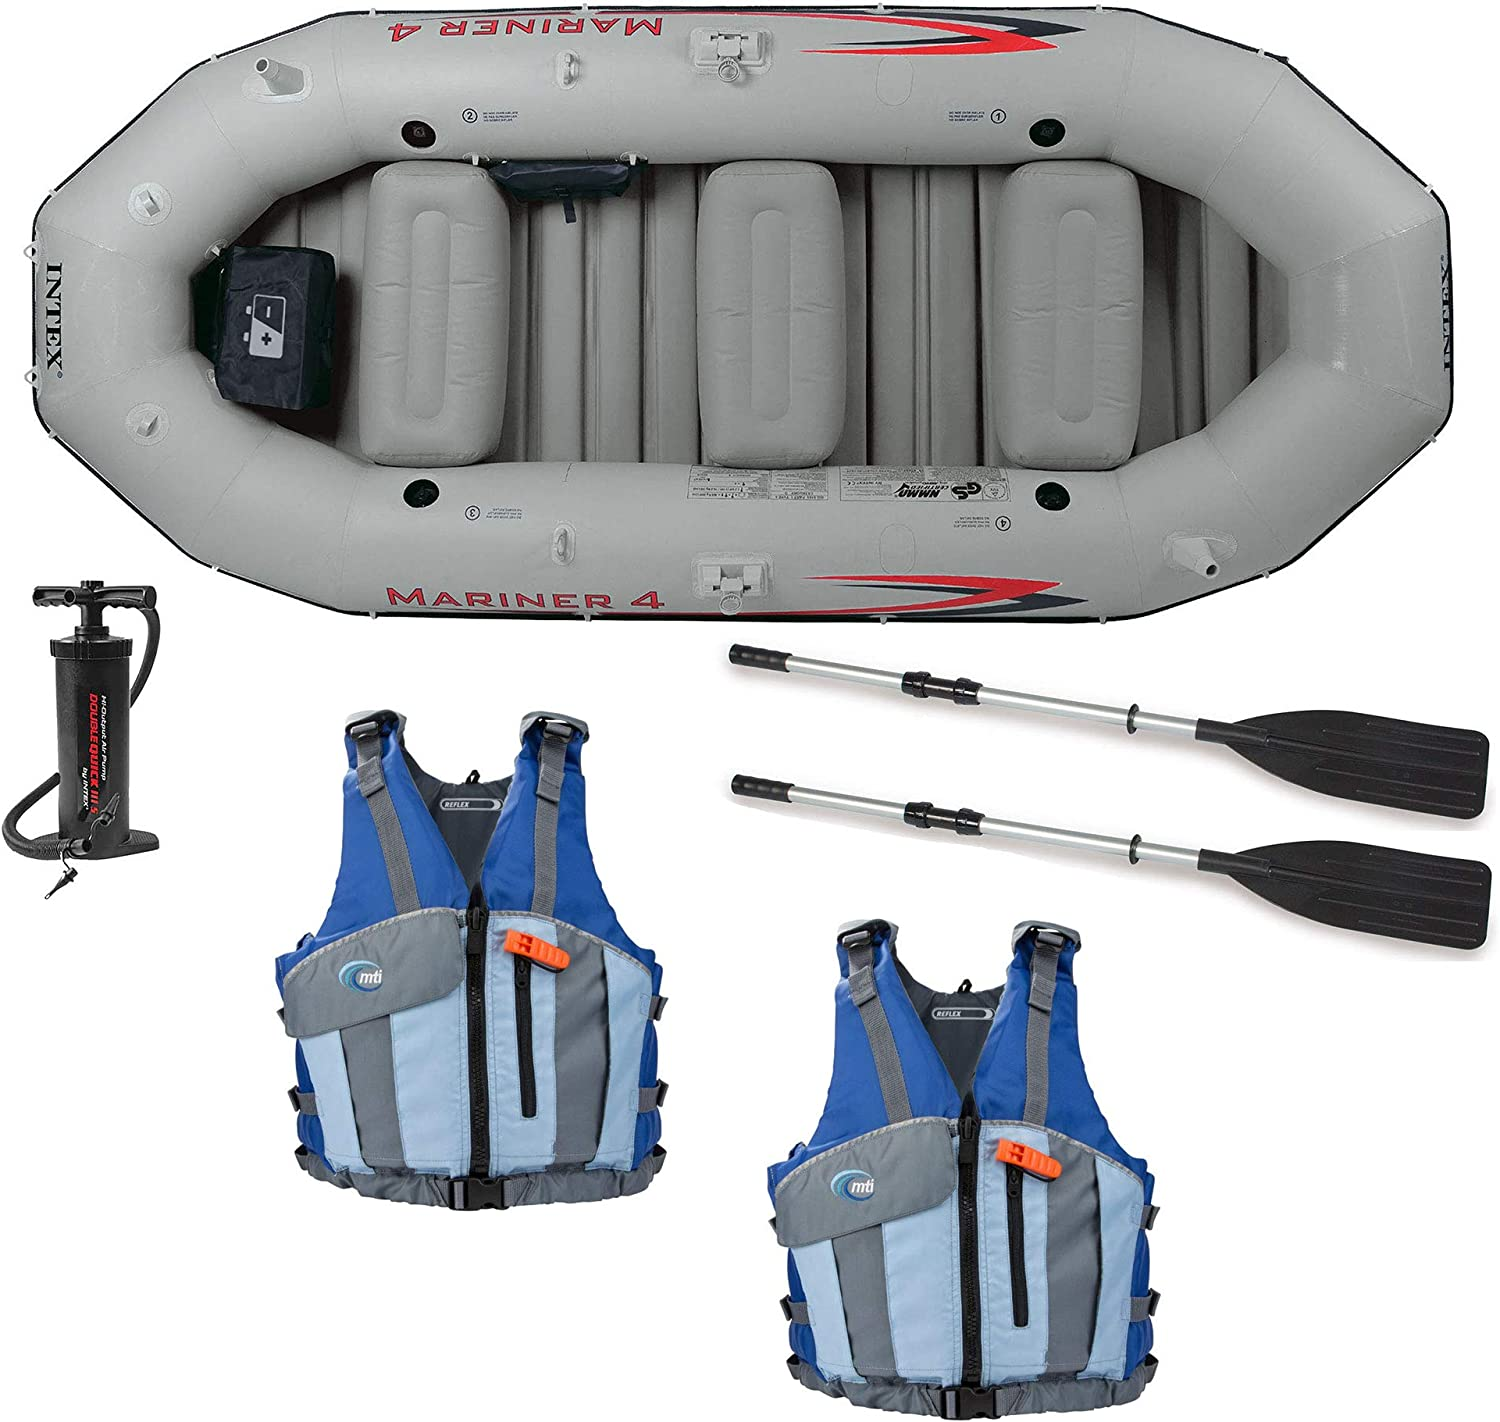 Intex Mariner 4Person Inflatable Boat, Oars, Pump, and 2 Life Jackets, M L